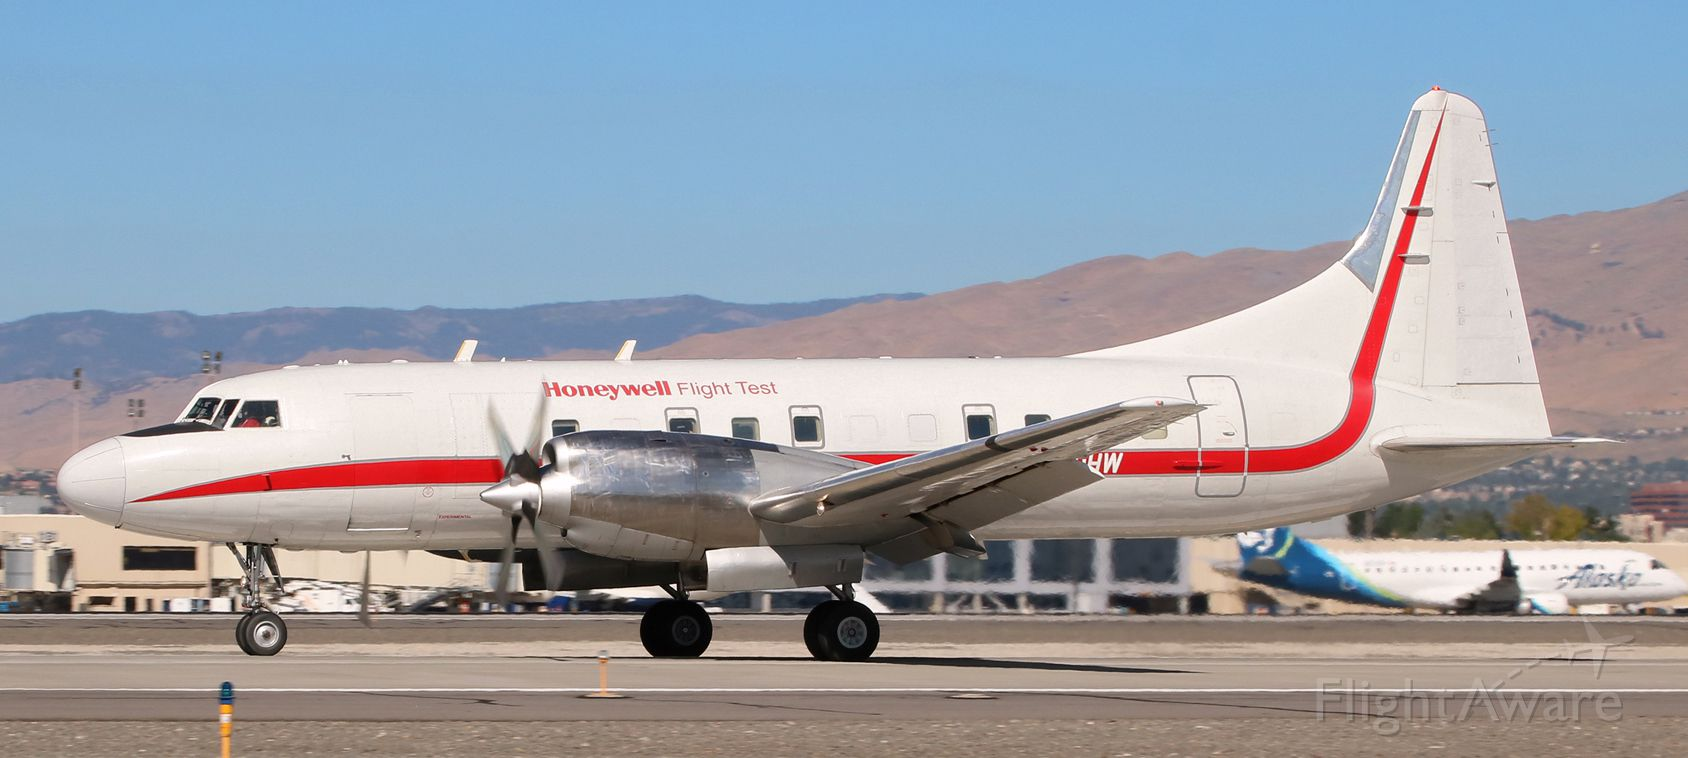 CONVAIR CV-580 (N580HW) - Could not help having a flashback to a wonderful era of aviation as I snapped this 1952 Convair 340 / 580 (N580HW) as it went past me on its deceleration roll after landing on RNO